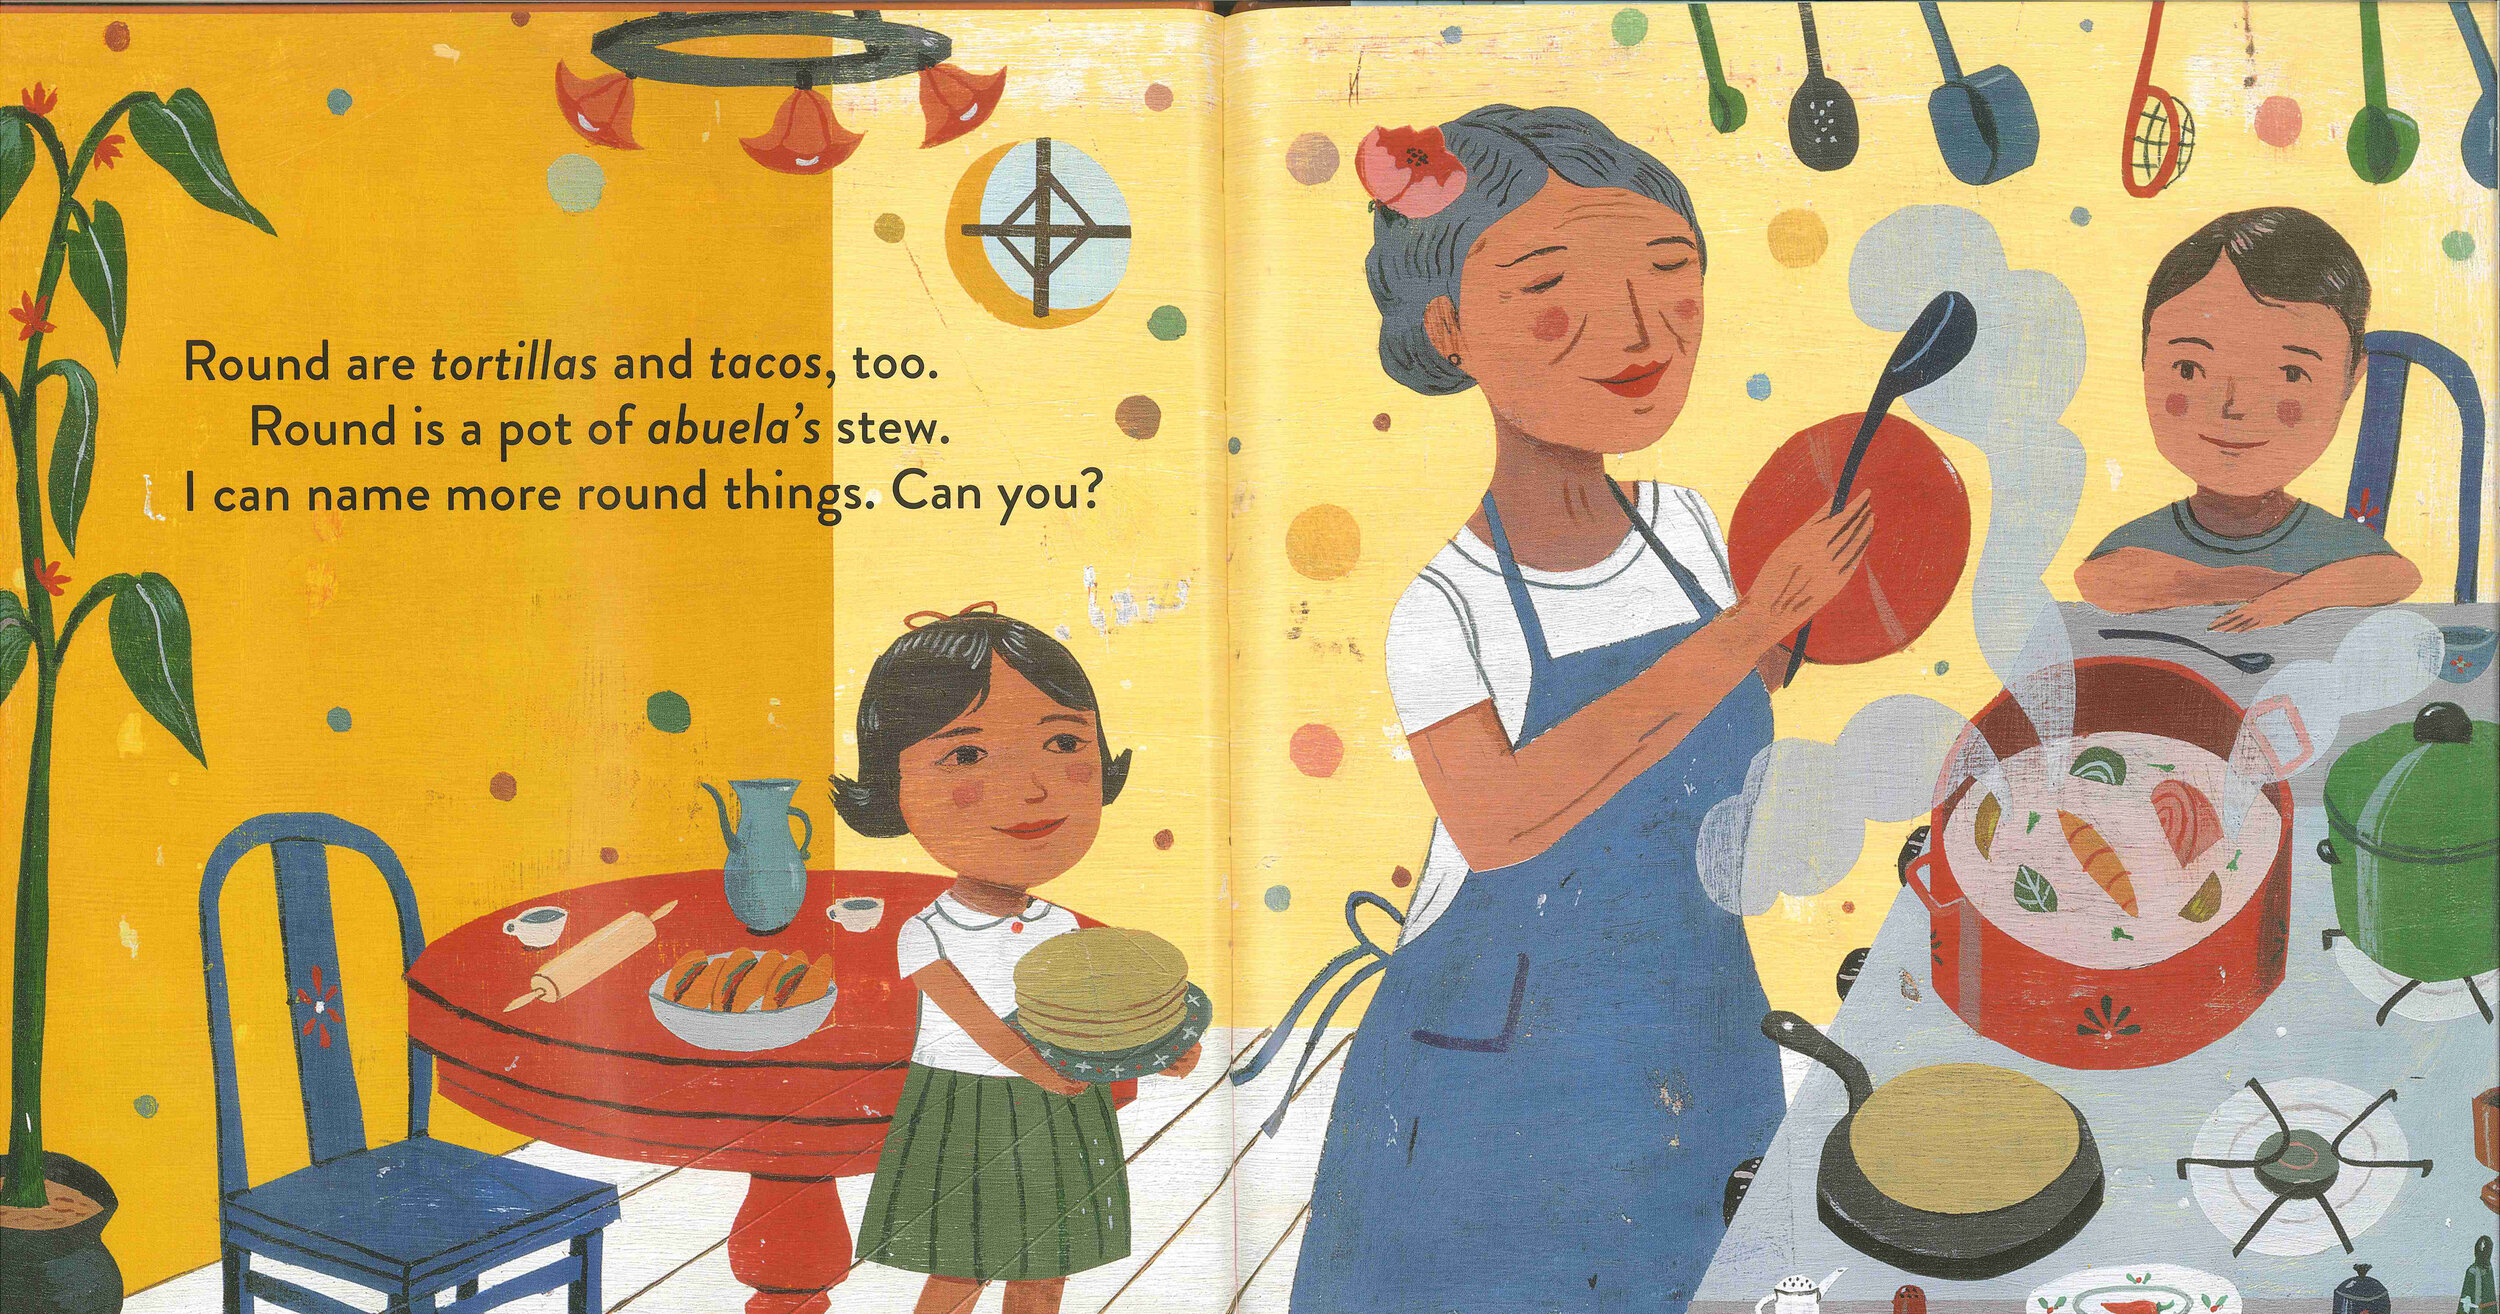 "An image of a page from  Tortillas Are Round . The image features and adult cooking a stew while two young children help. The text says: ""Round are tortillas and tacos, too. Round is a pot of abuela's stew. I can name more round things. Can you?""   Source:  teachinglatinamericathroughliterature.wordpress.com/2014/11/24/mira-look-round-is-a-tortilla-a-book-of-shapes/"